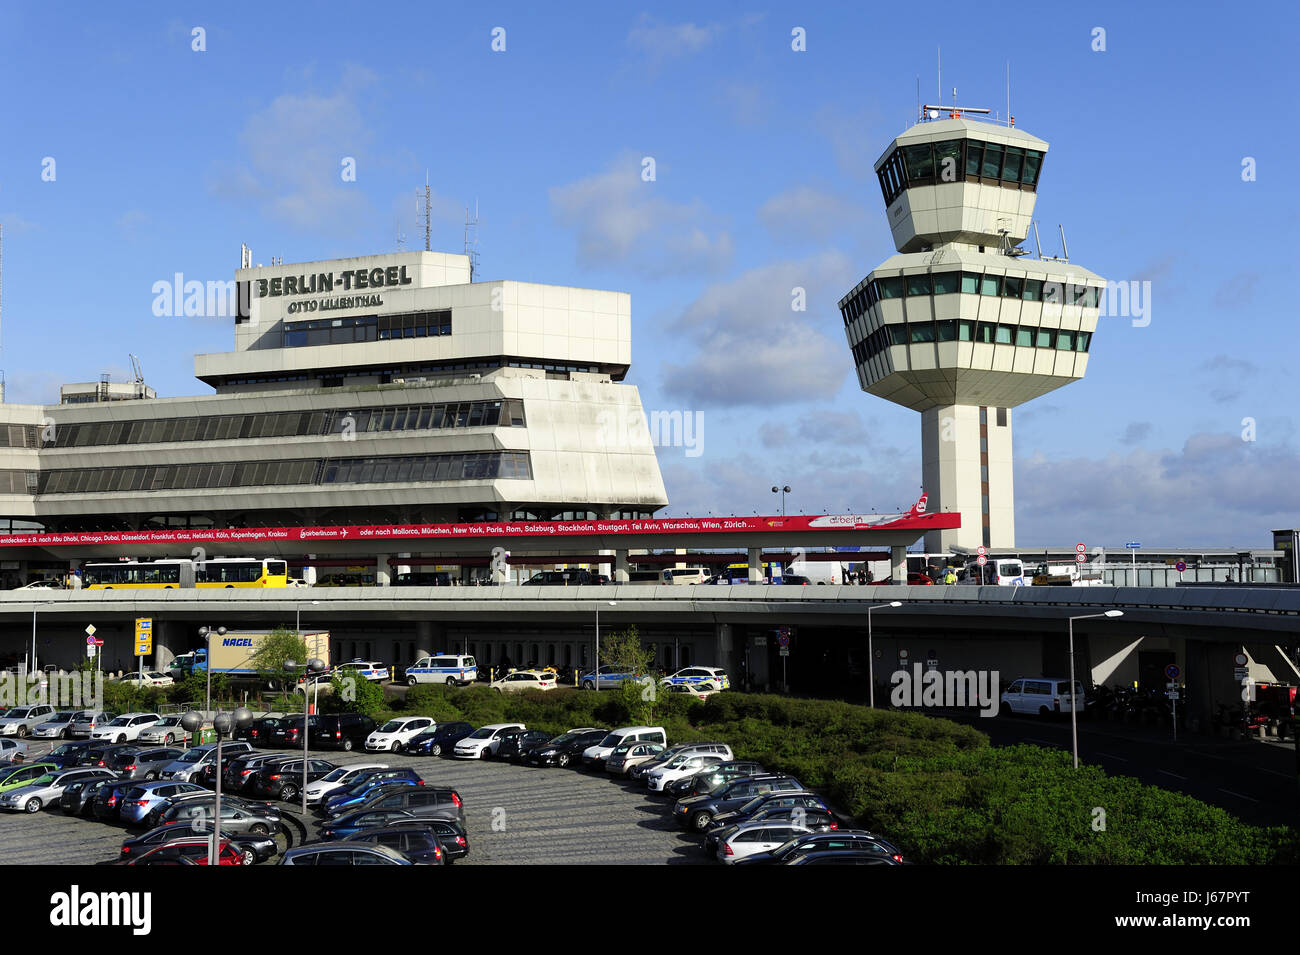 berlin, berlin-tegelairport, airports, architecture, area, areas, travel, - Stock Image